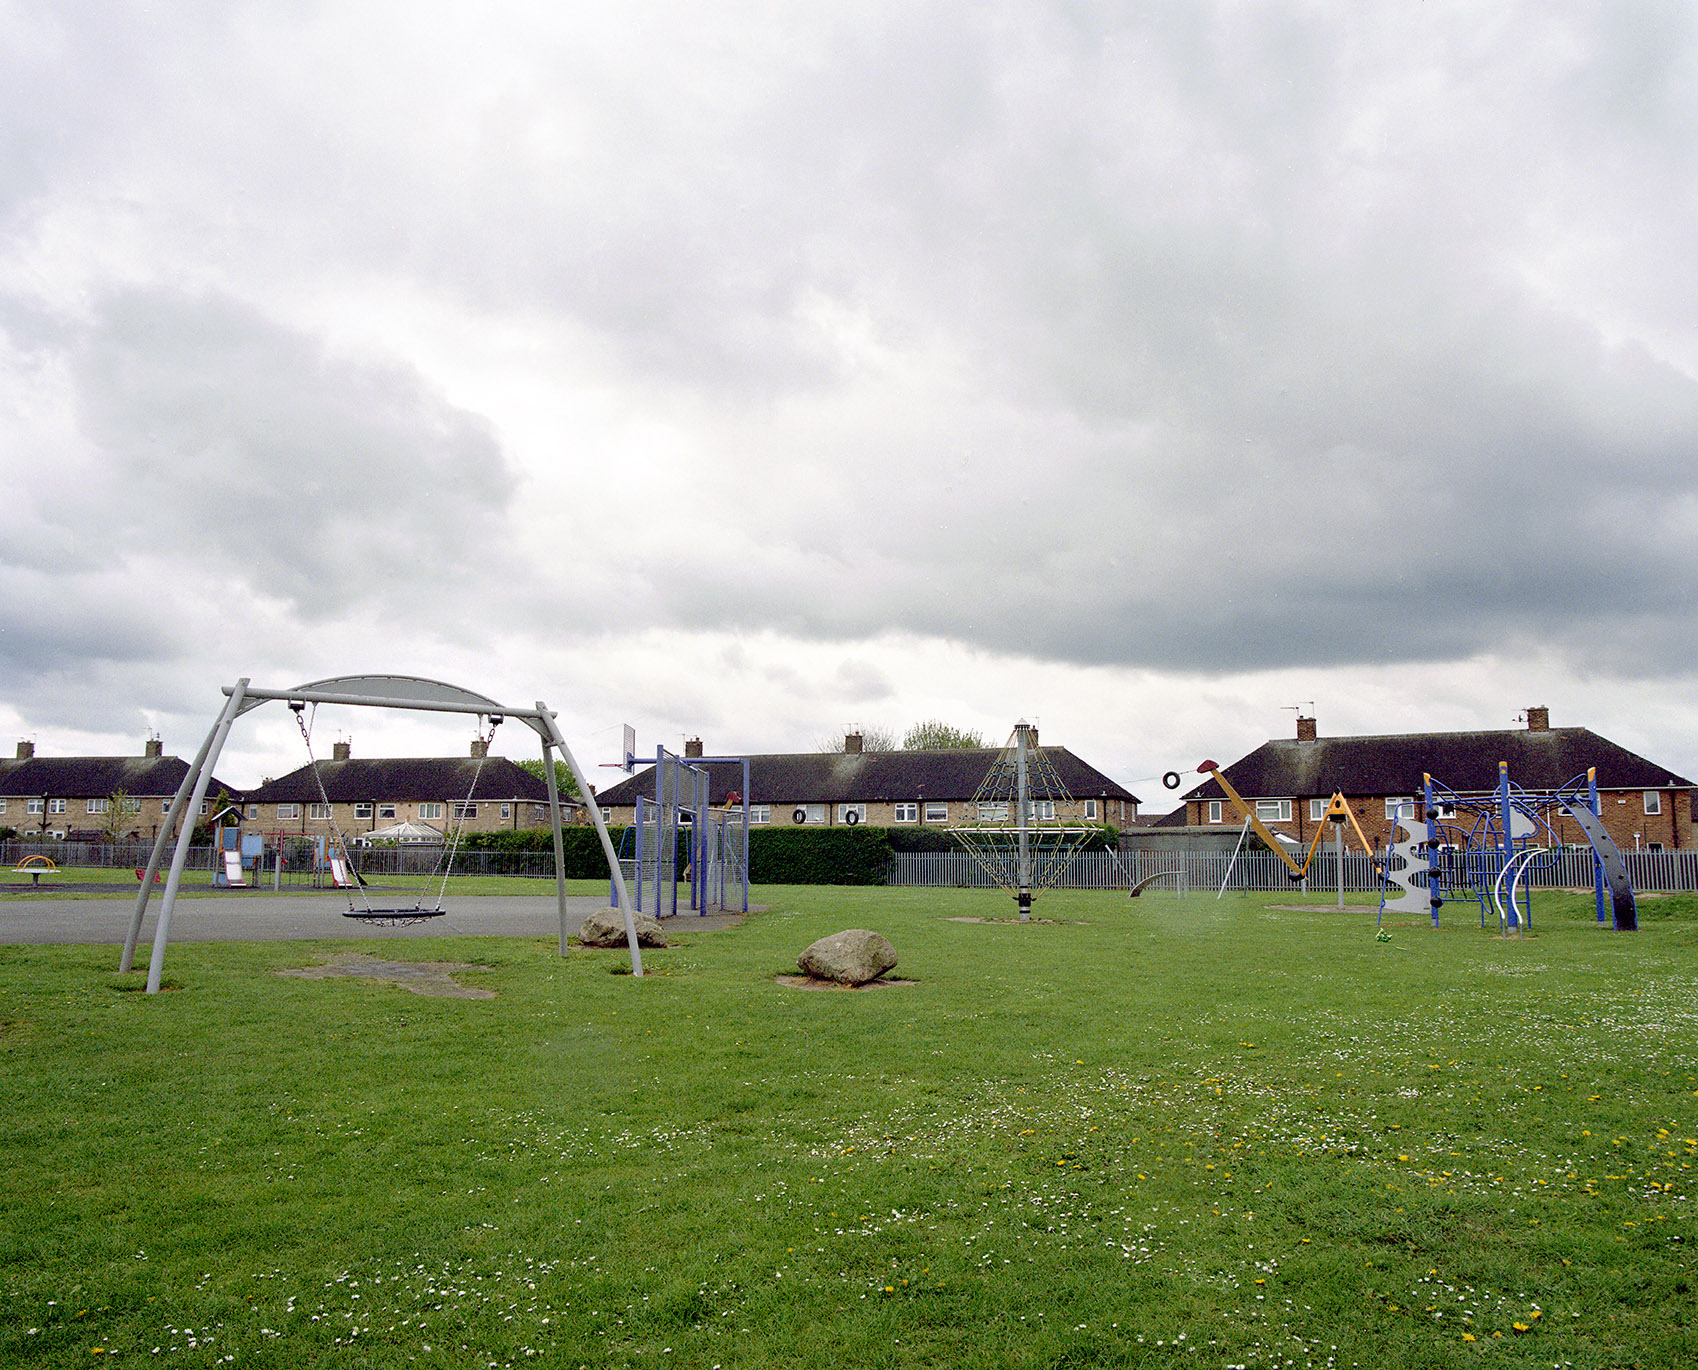 Image of a children's playground with semi detached housing in the background